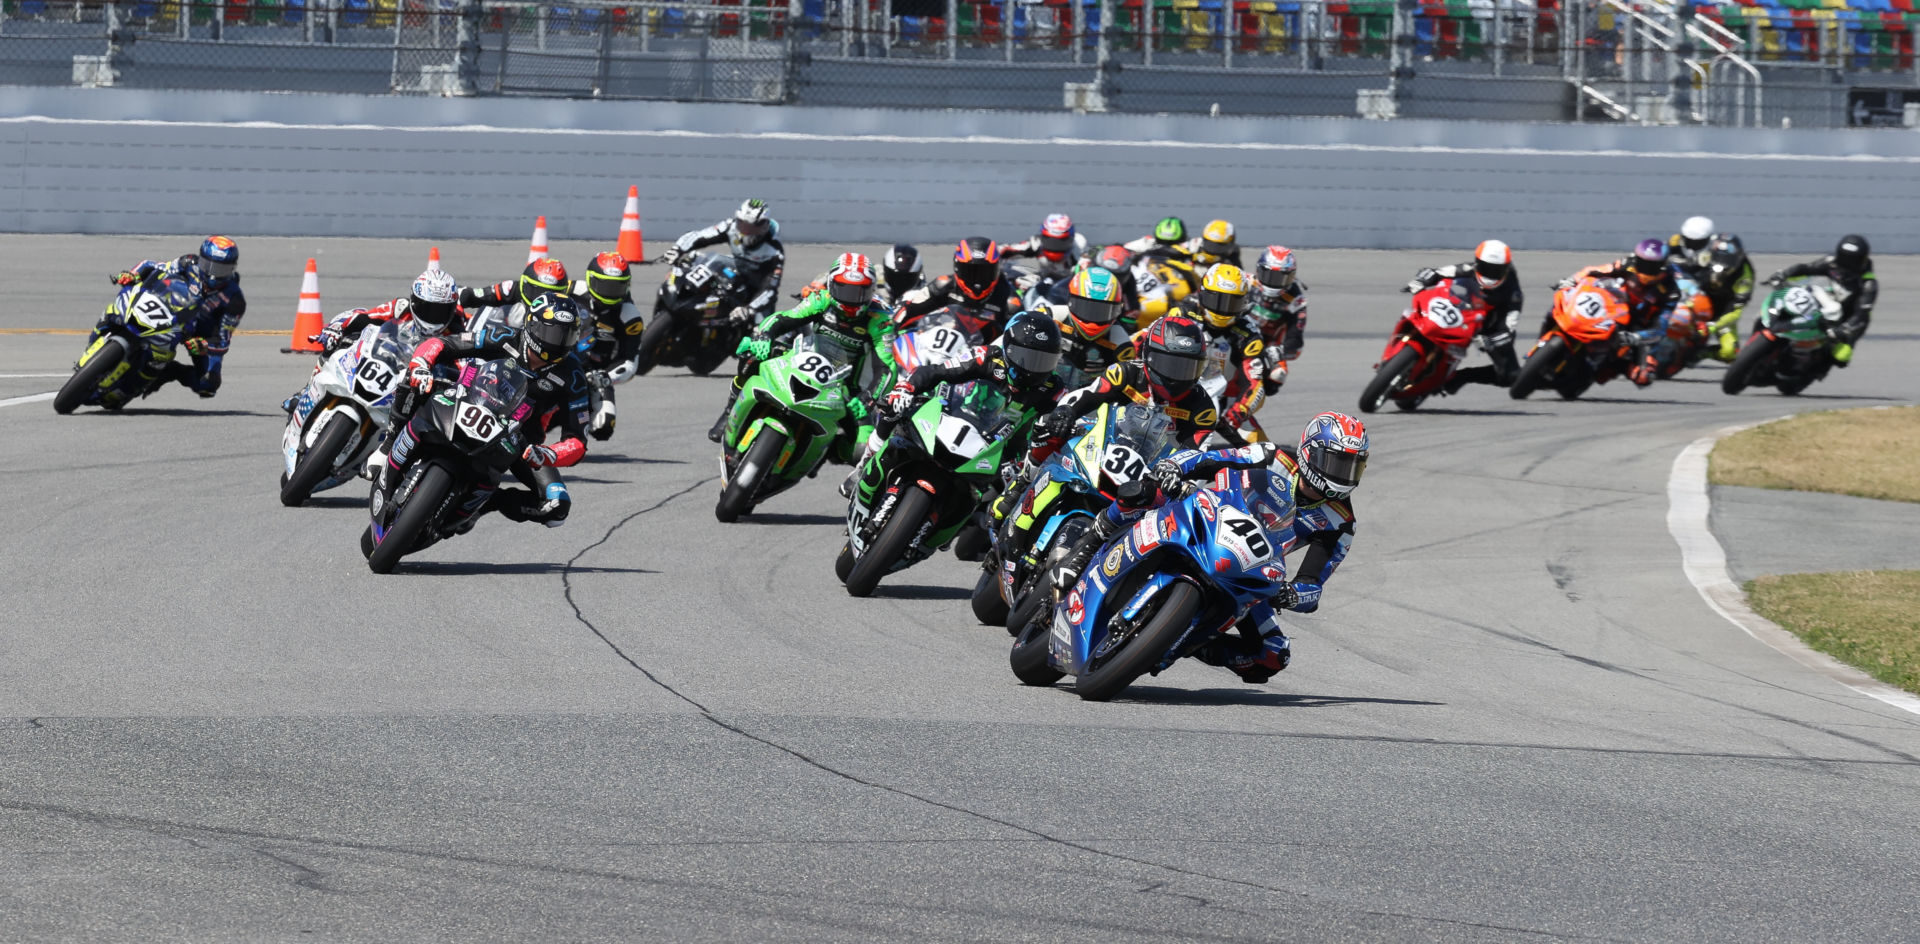 Sean Dylan Kelly (40) leads Michael Barnes (34), Kyle Wyman (1), Brandon Paasch (96), and the rest of the field at the start of the 79th Daytona 200, in 2021. Photo by Brian J. Nelson.